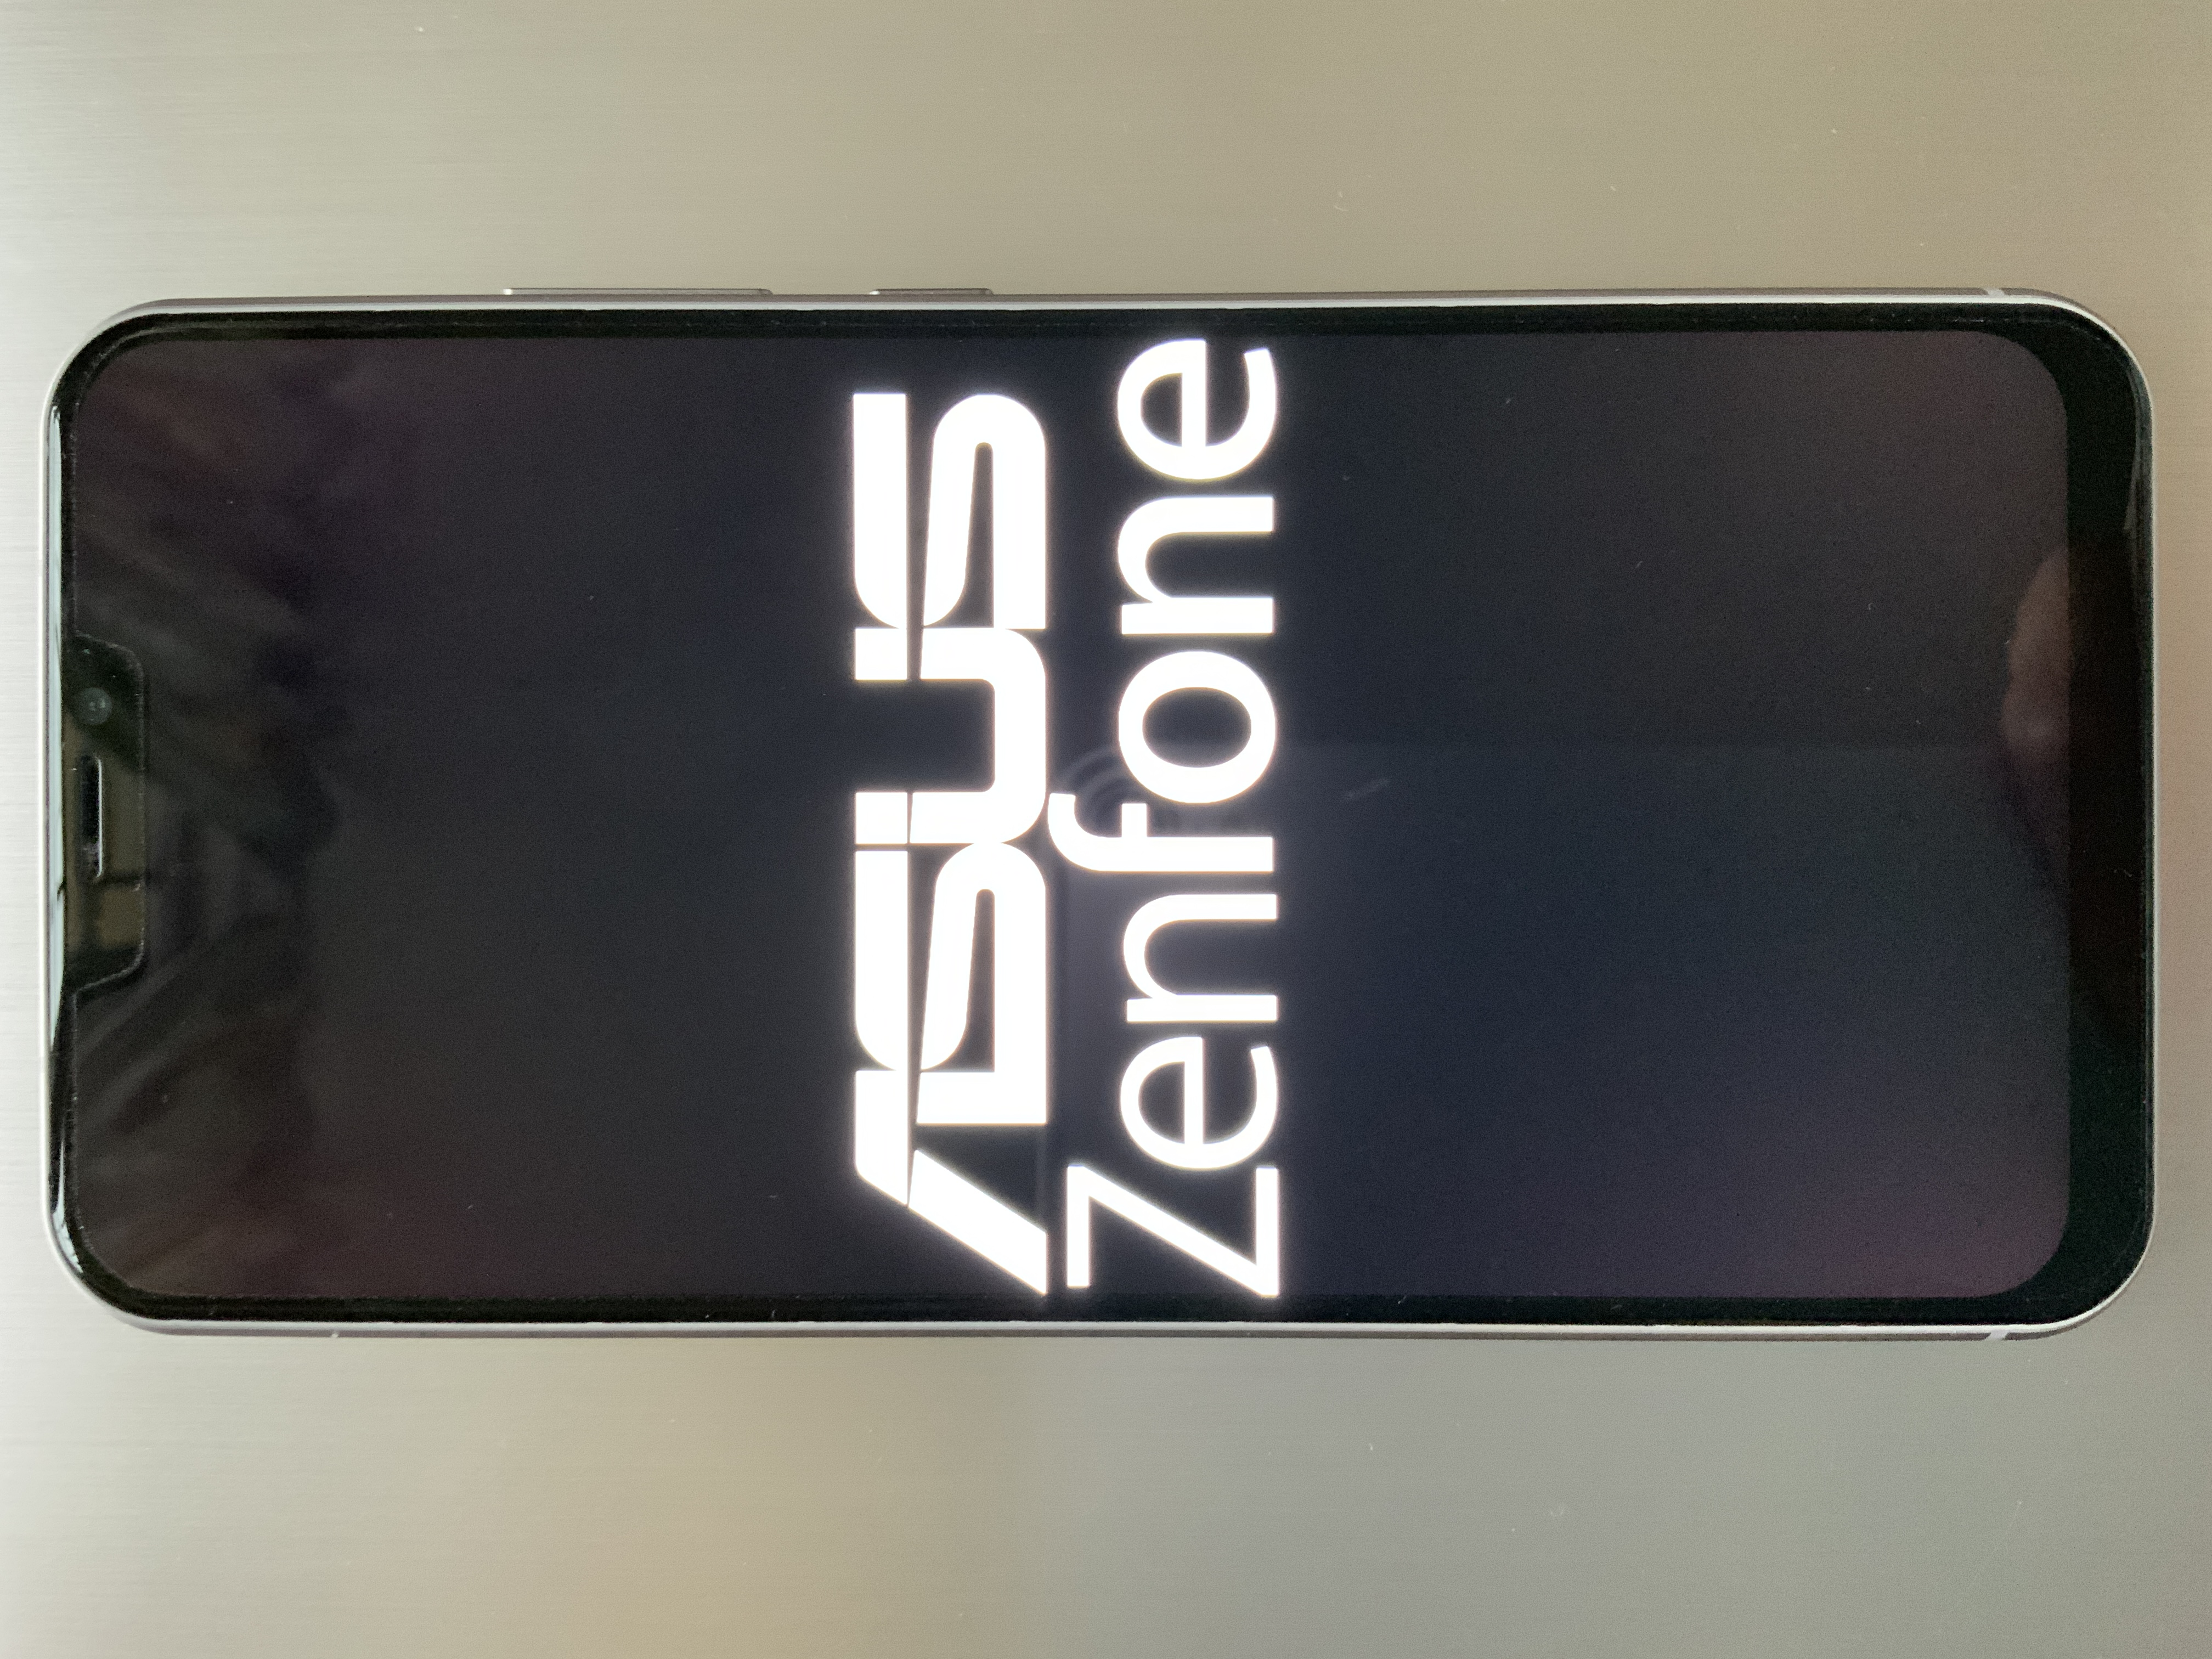 asus zenfone 5 t00f usb driver for windows 7